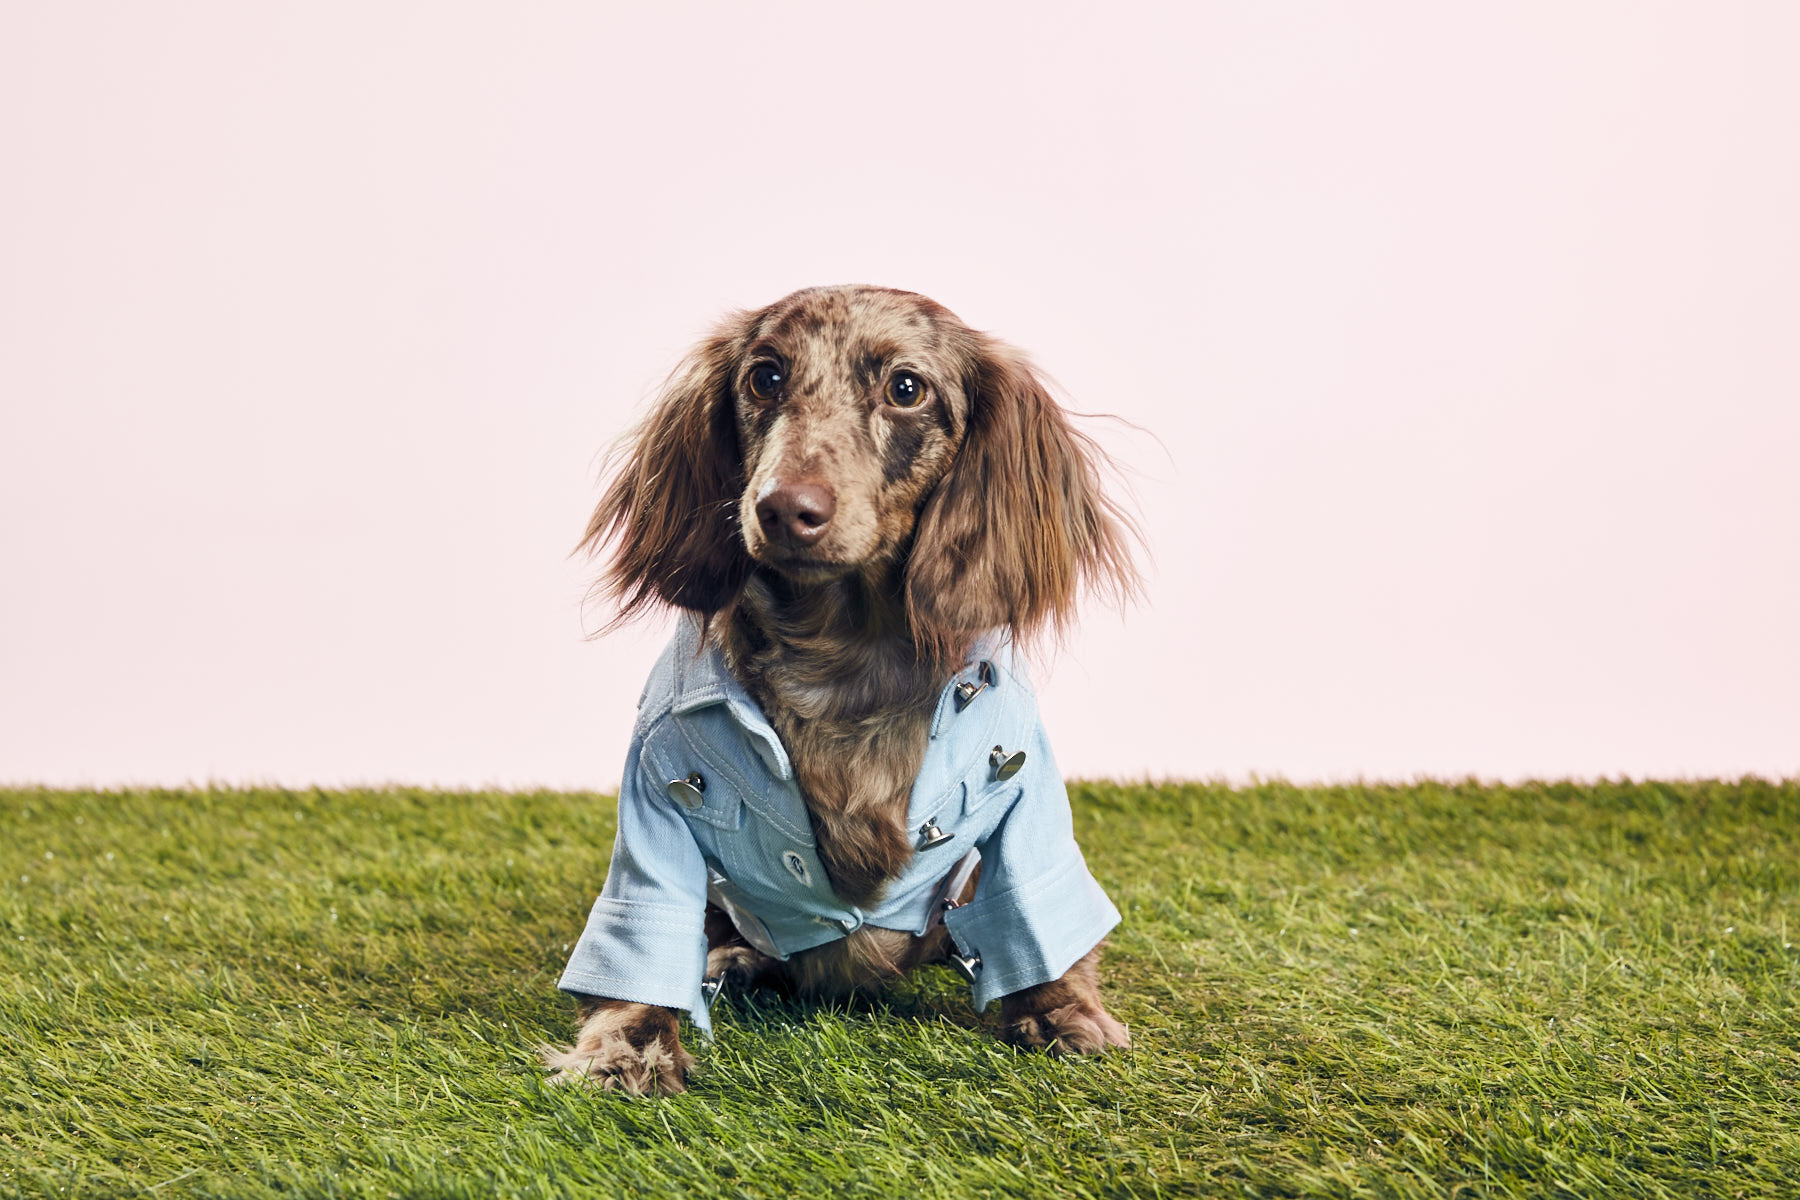 BOJI1/Dachshund - Small but mighty, fashionista with an eye for style, always ready for an adventure.